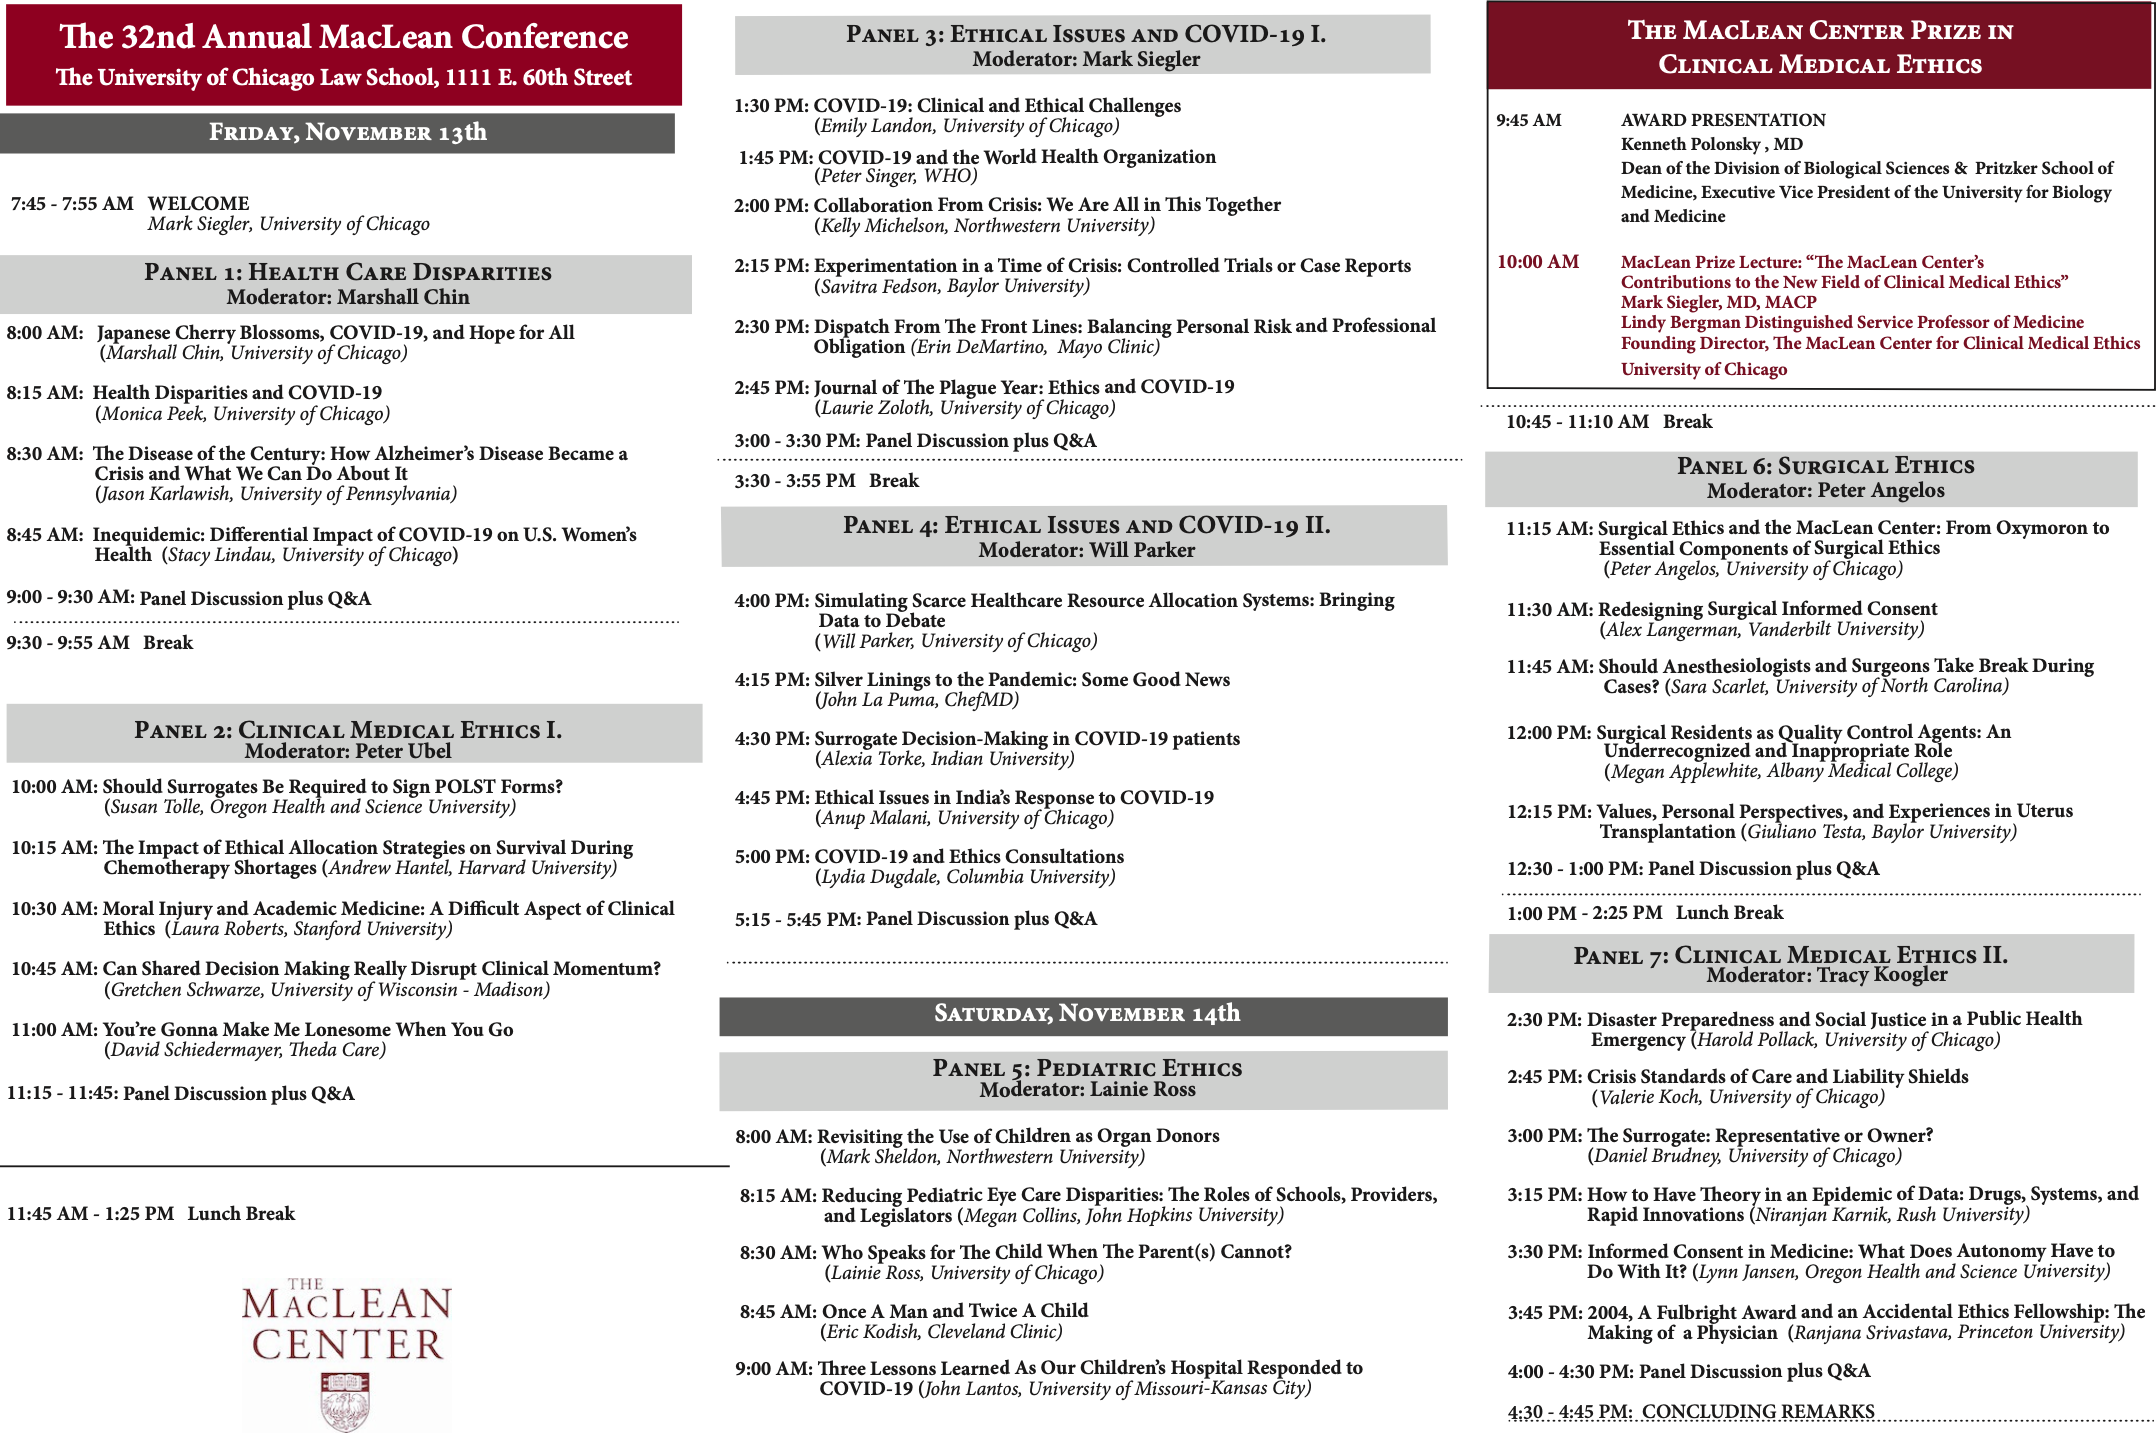 32nd Annual MacLean Conference Agenda